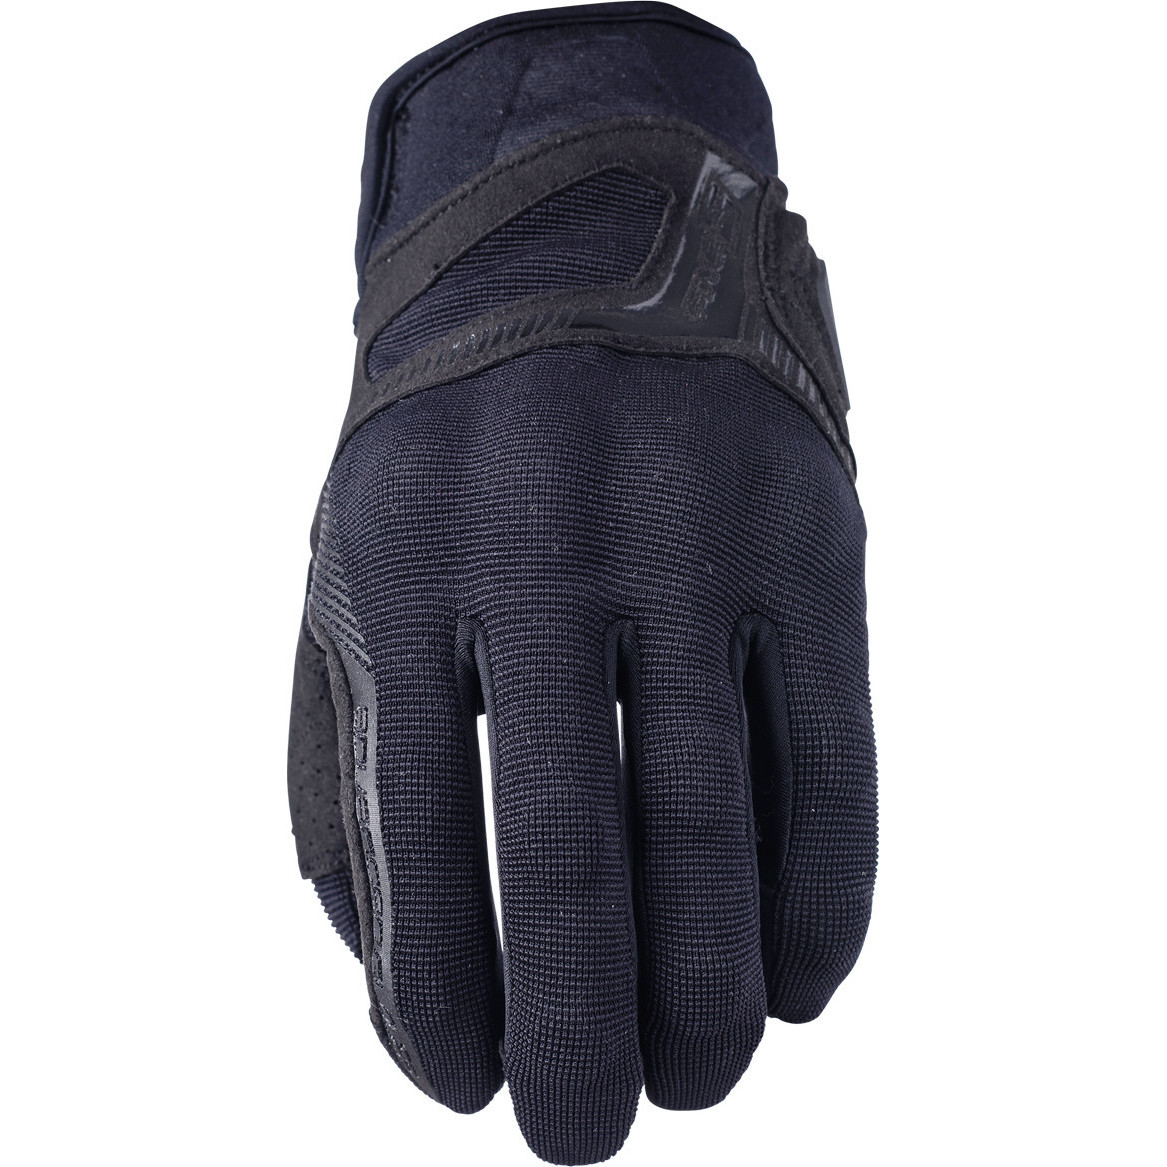 Five-RS3-Motorcycle-Gloves-Motorbike-Bike-Armour-Urban-Touch-Screen-GhostBikes thumbnail 4